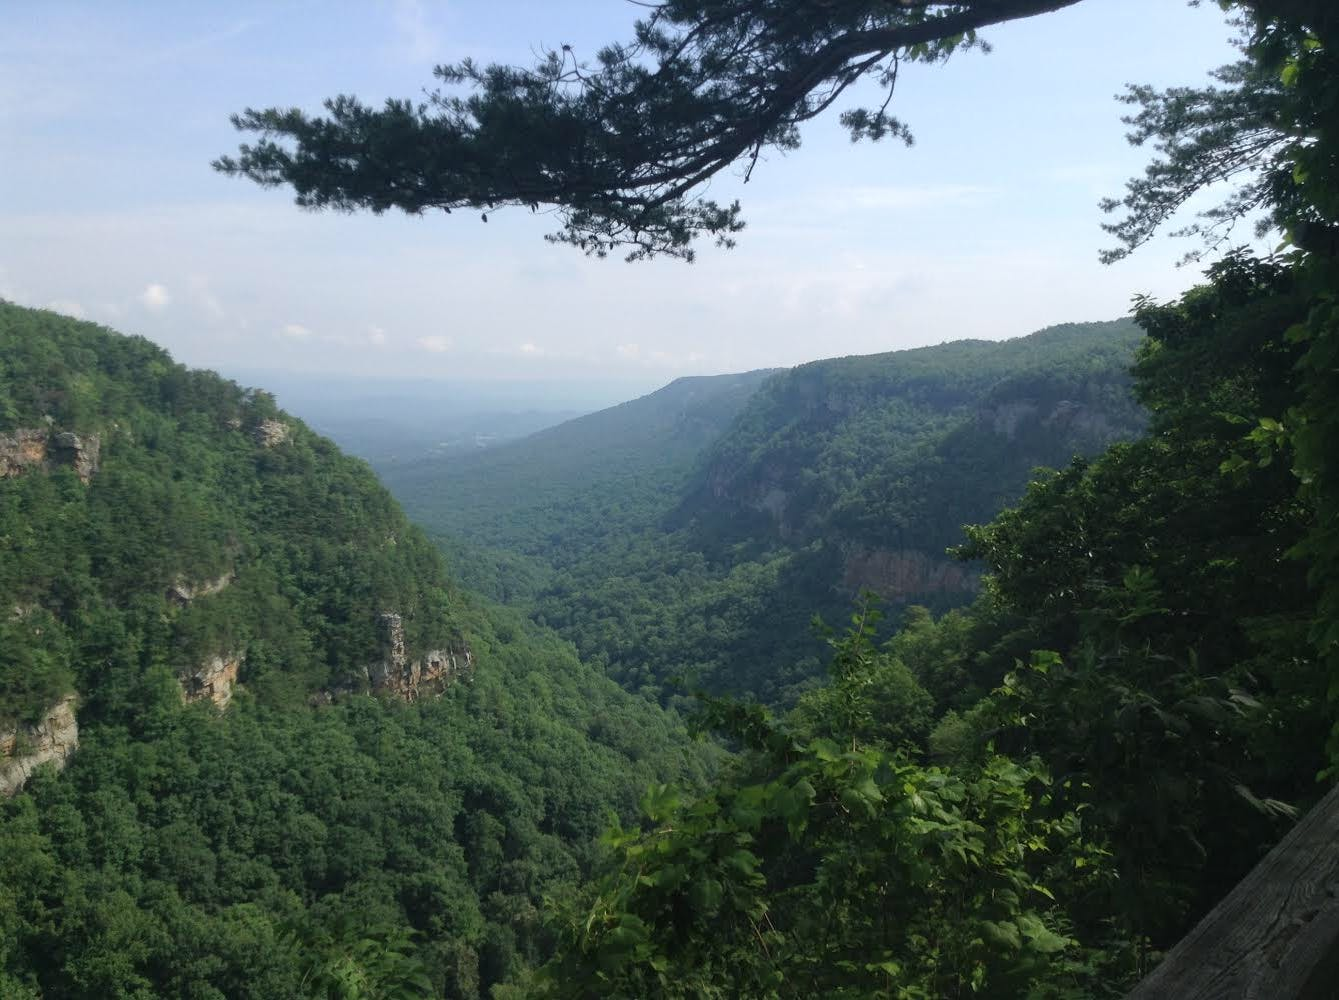 Free stock photo of canyon, Cloudland, Steven Wooddell, Tennessee